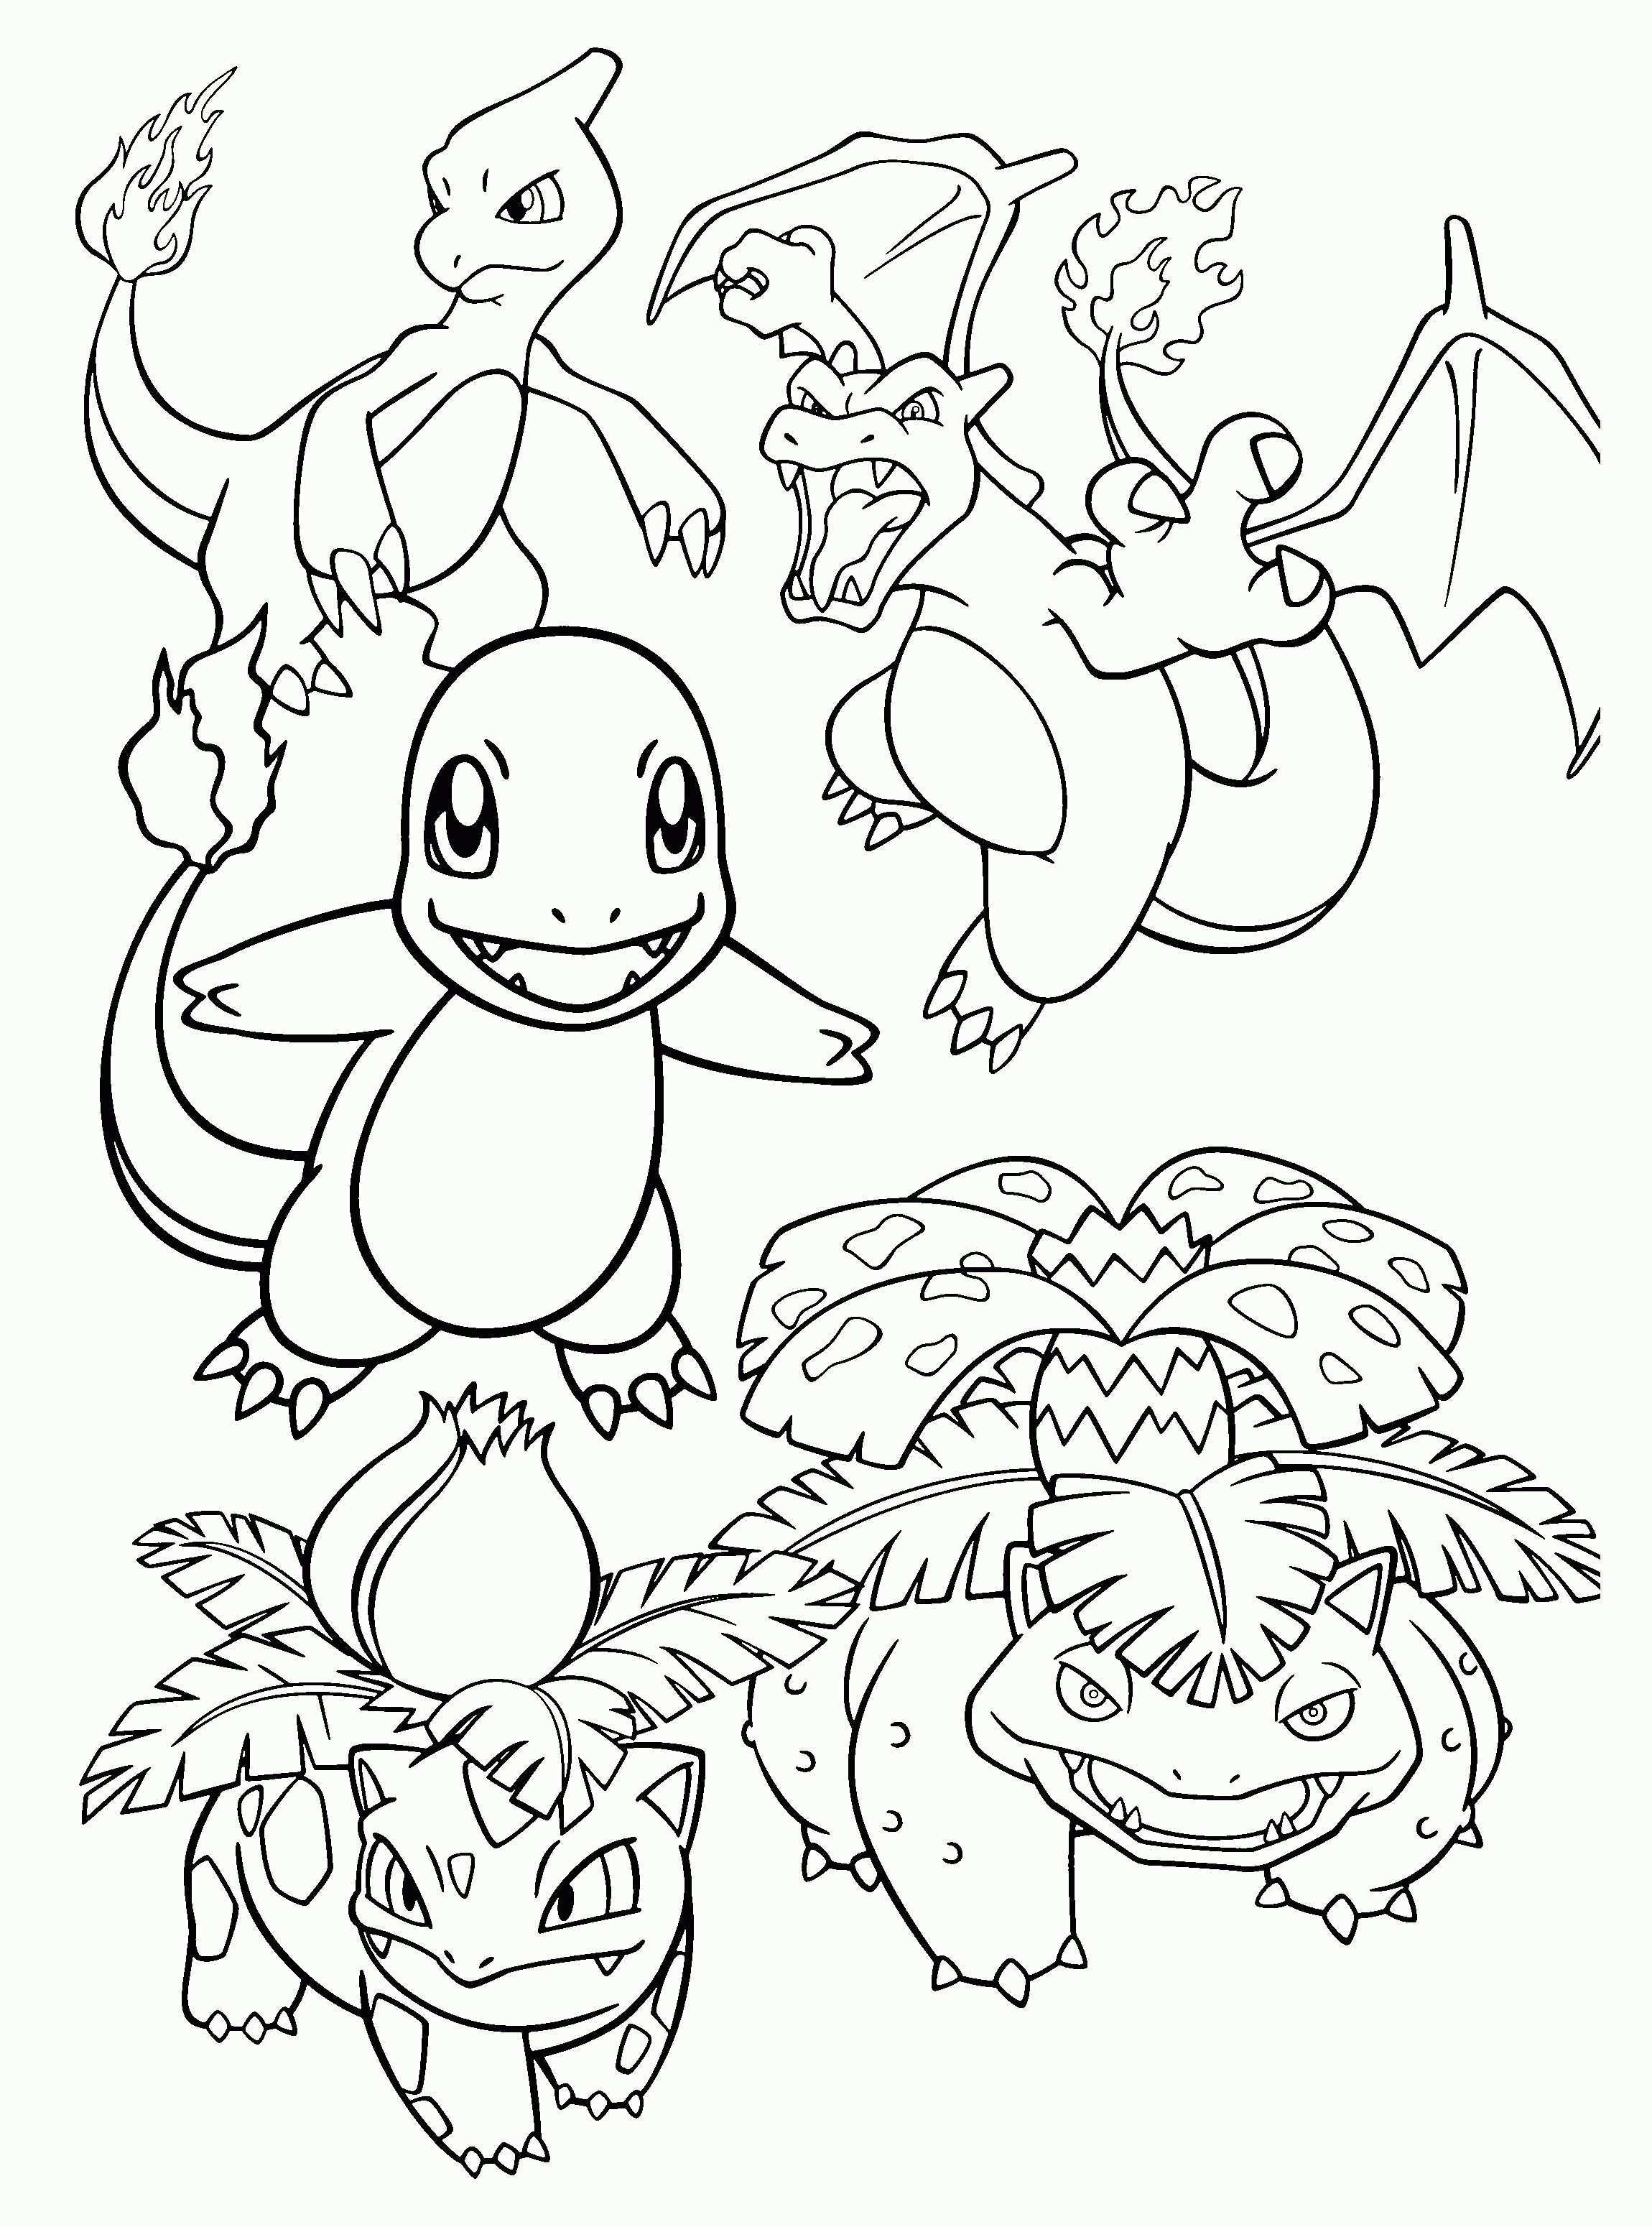 Pokemon Kleurplaat Charizard Check More At Https Olivinum Com Pokemon Kleurplaat Charizard Pokemon Coloring Pages Pokemon Coloring Cartoon Coloring Pages